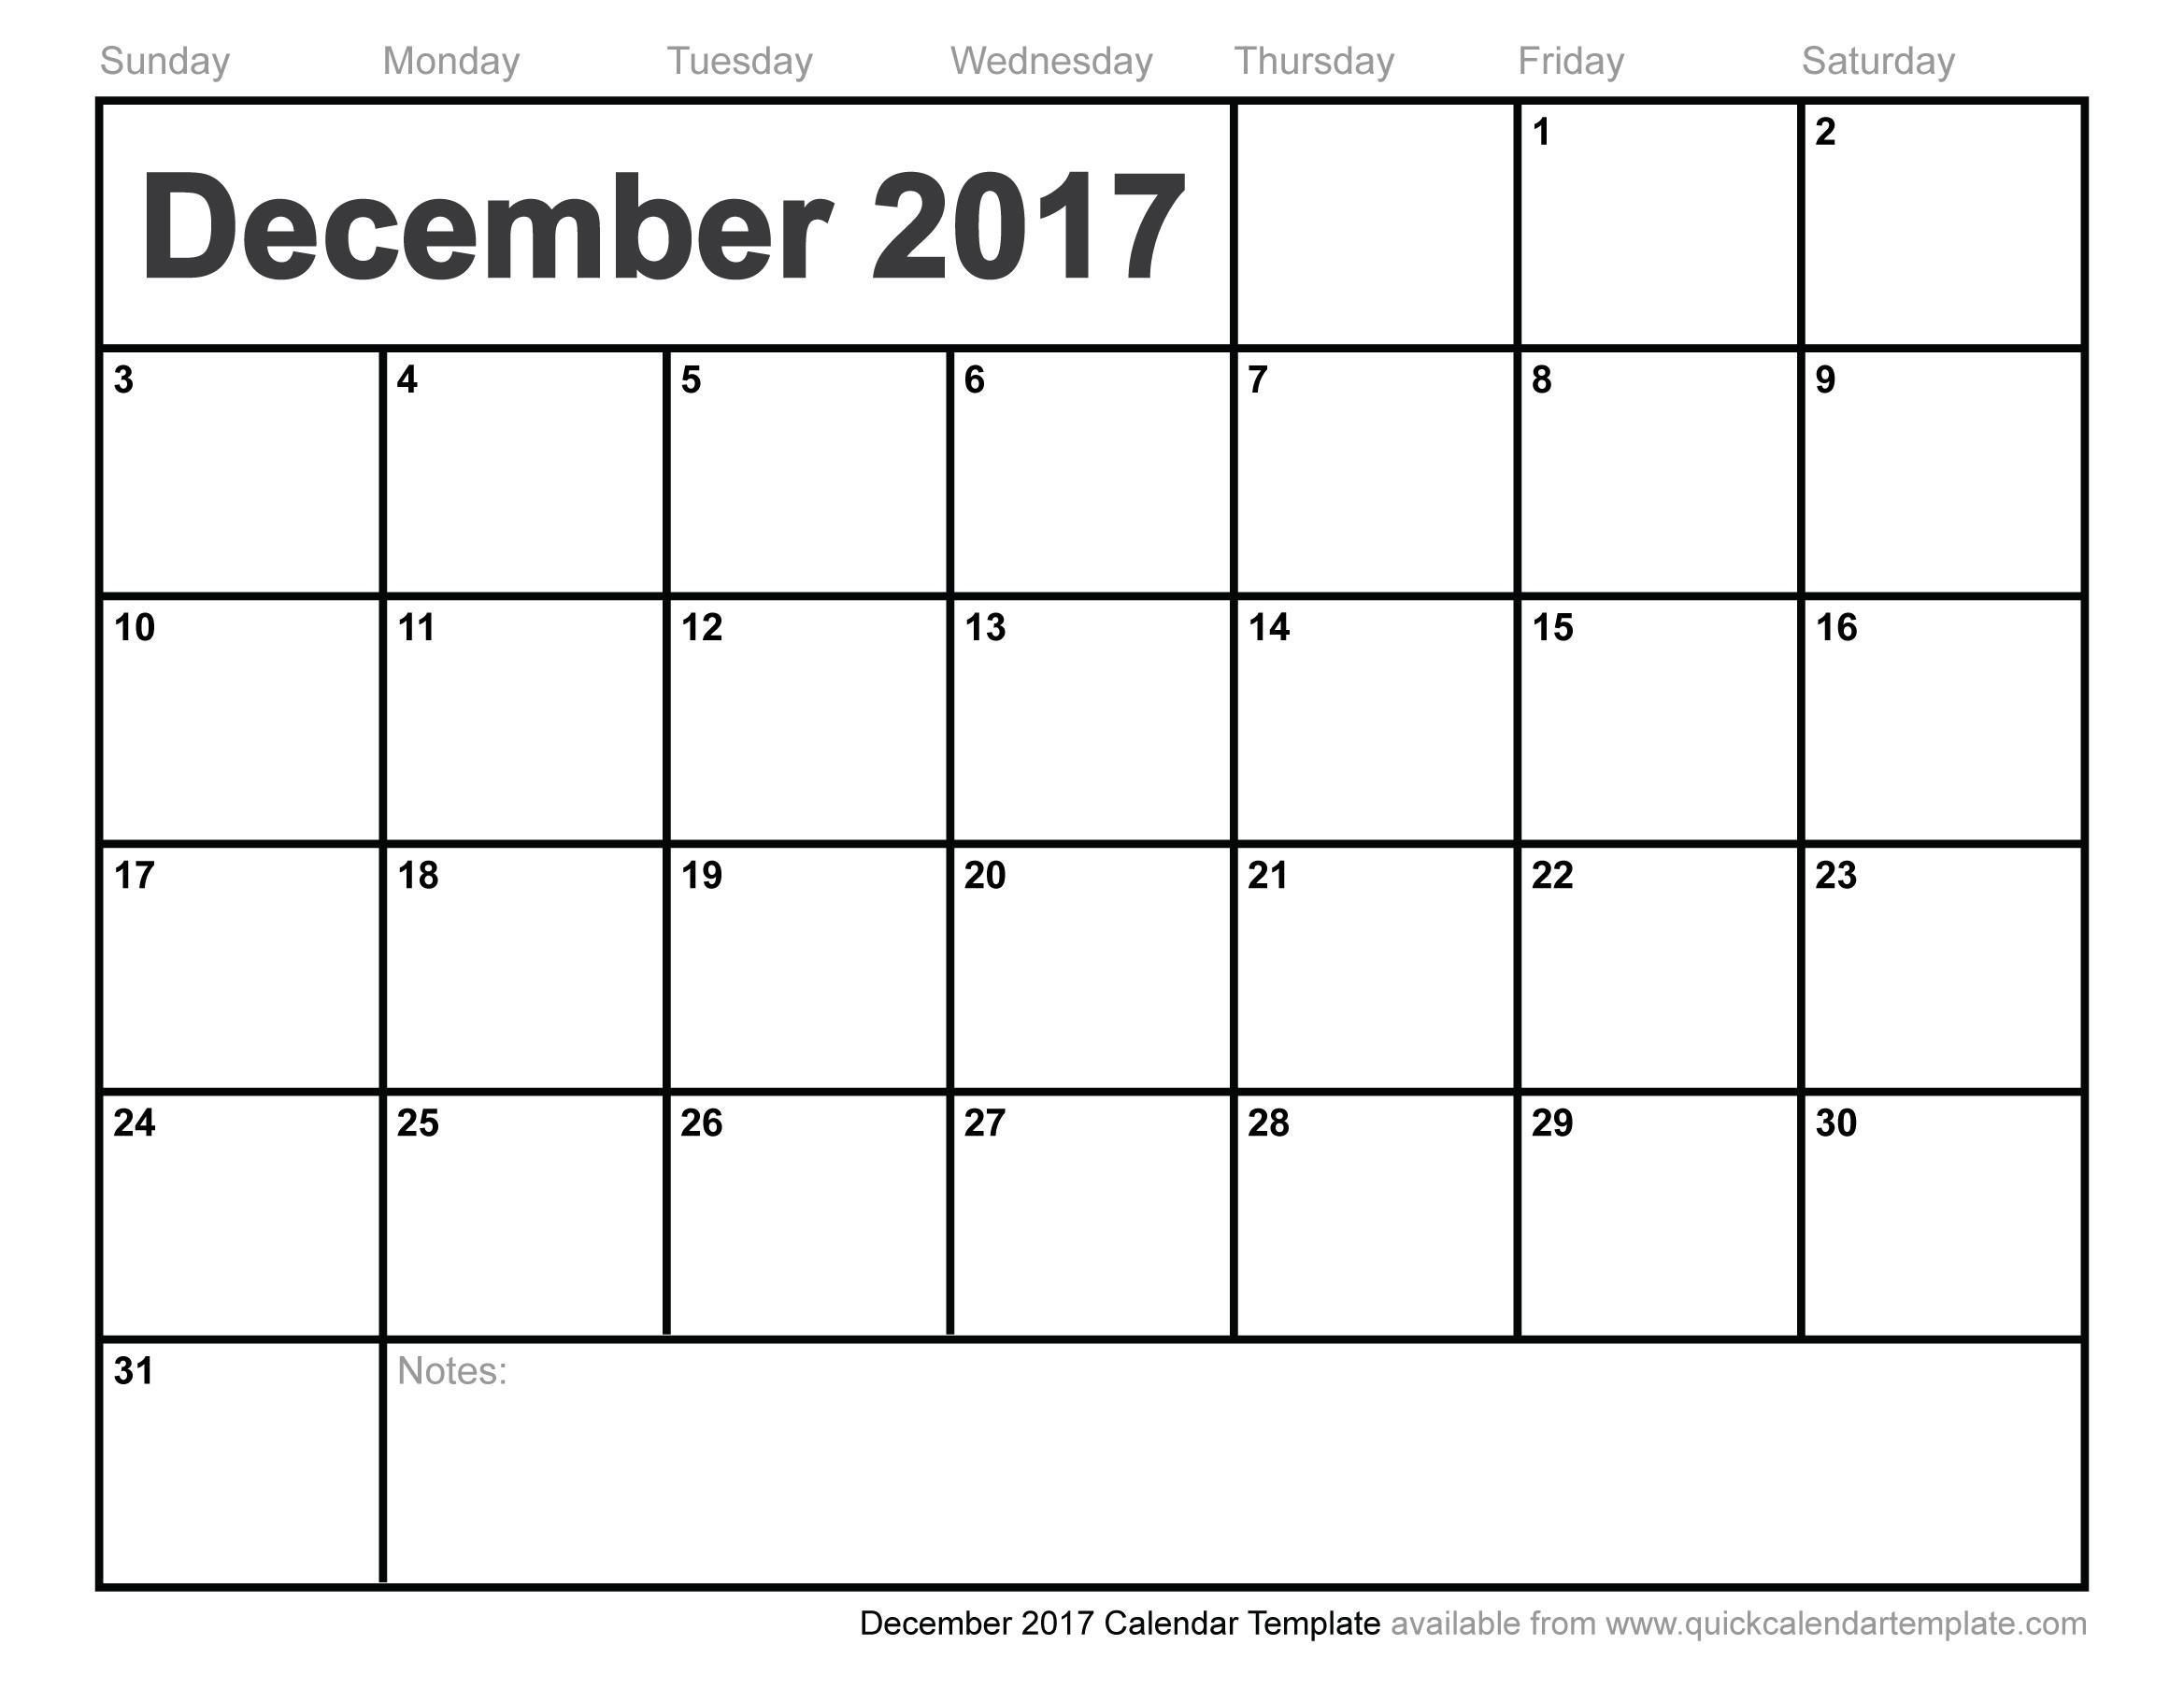 Free December Calendar Printable Templates With Holidays